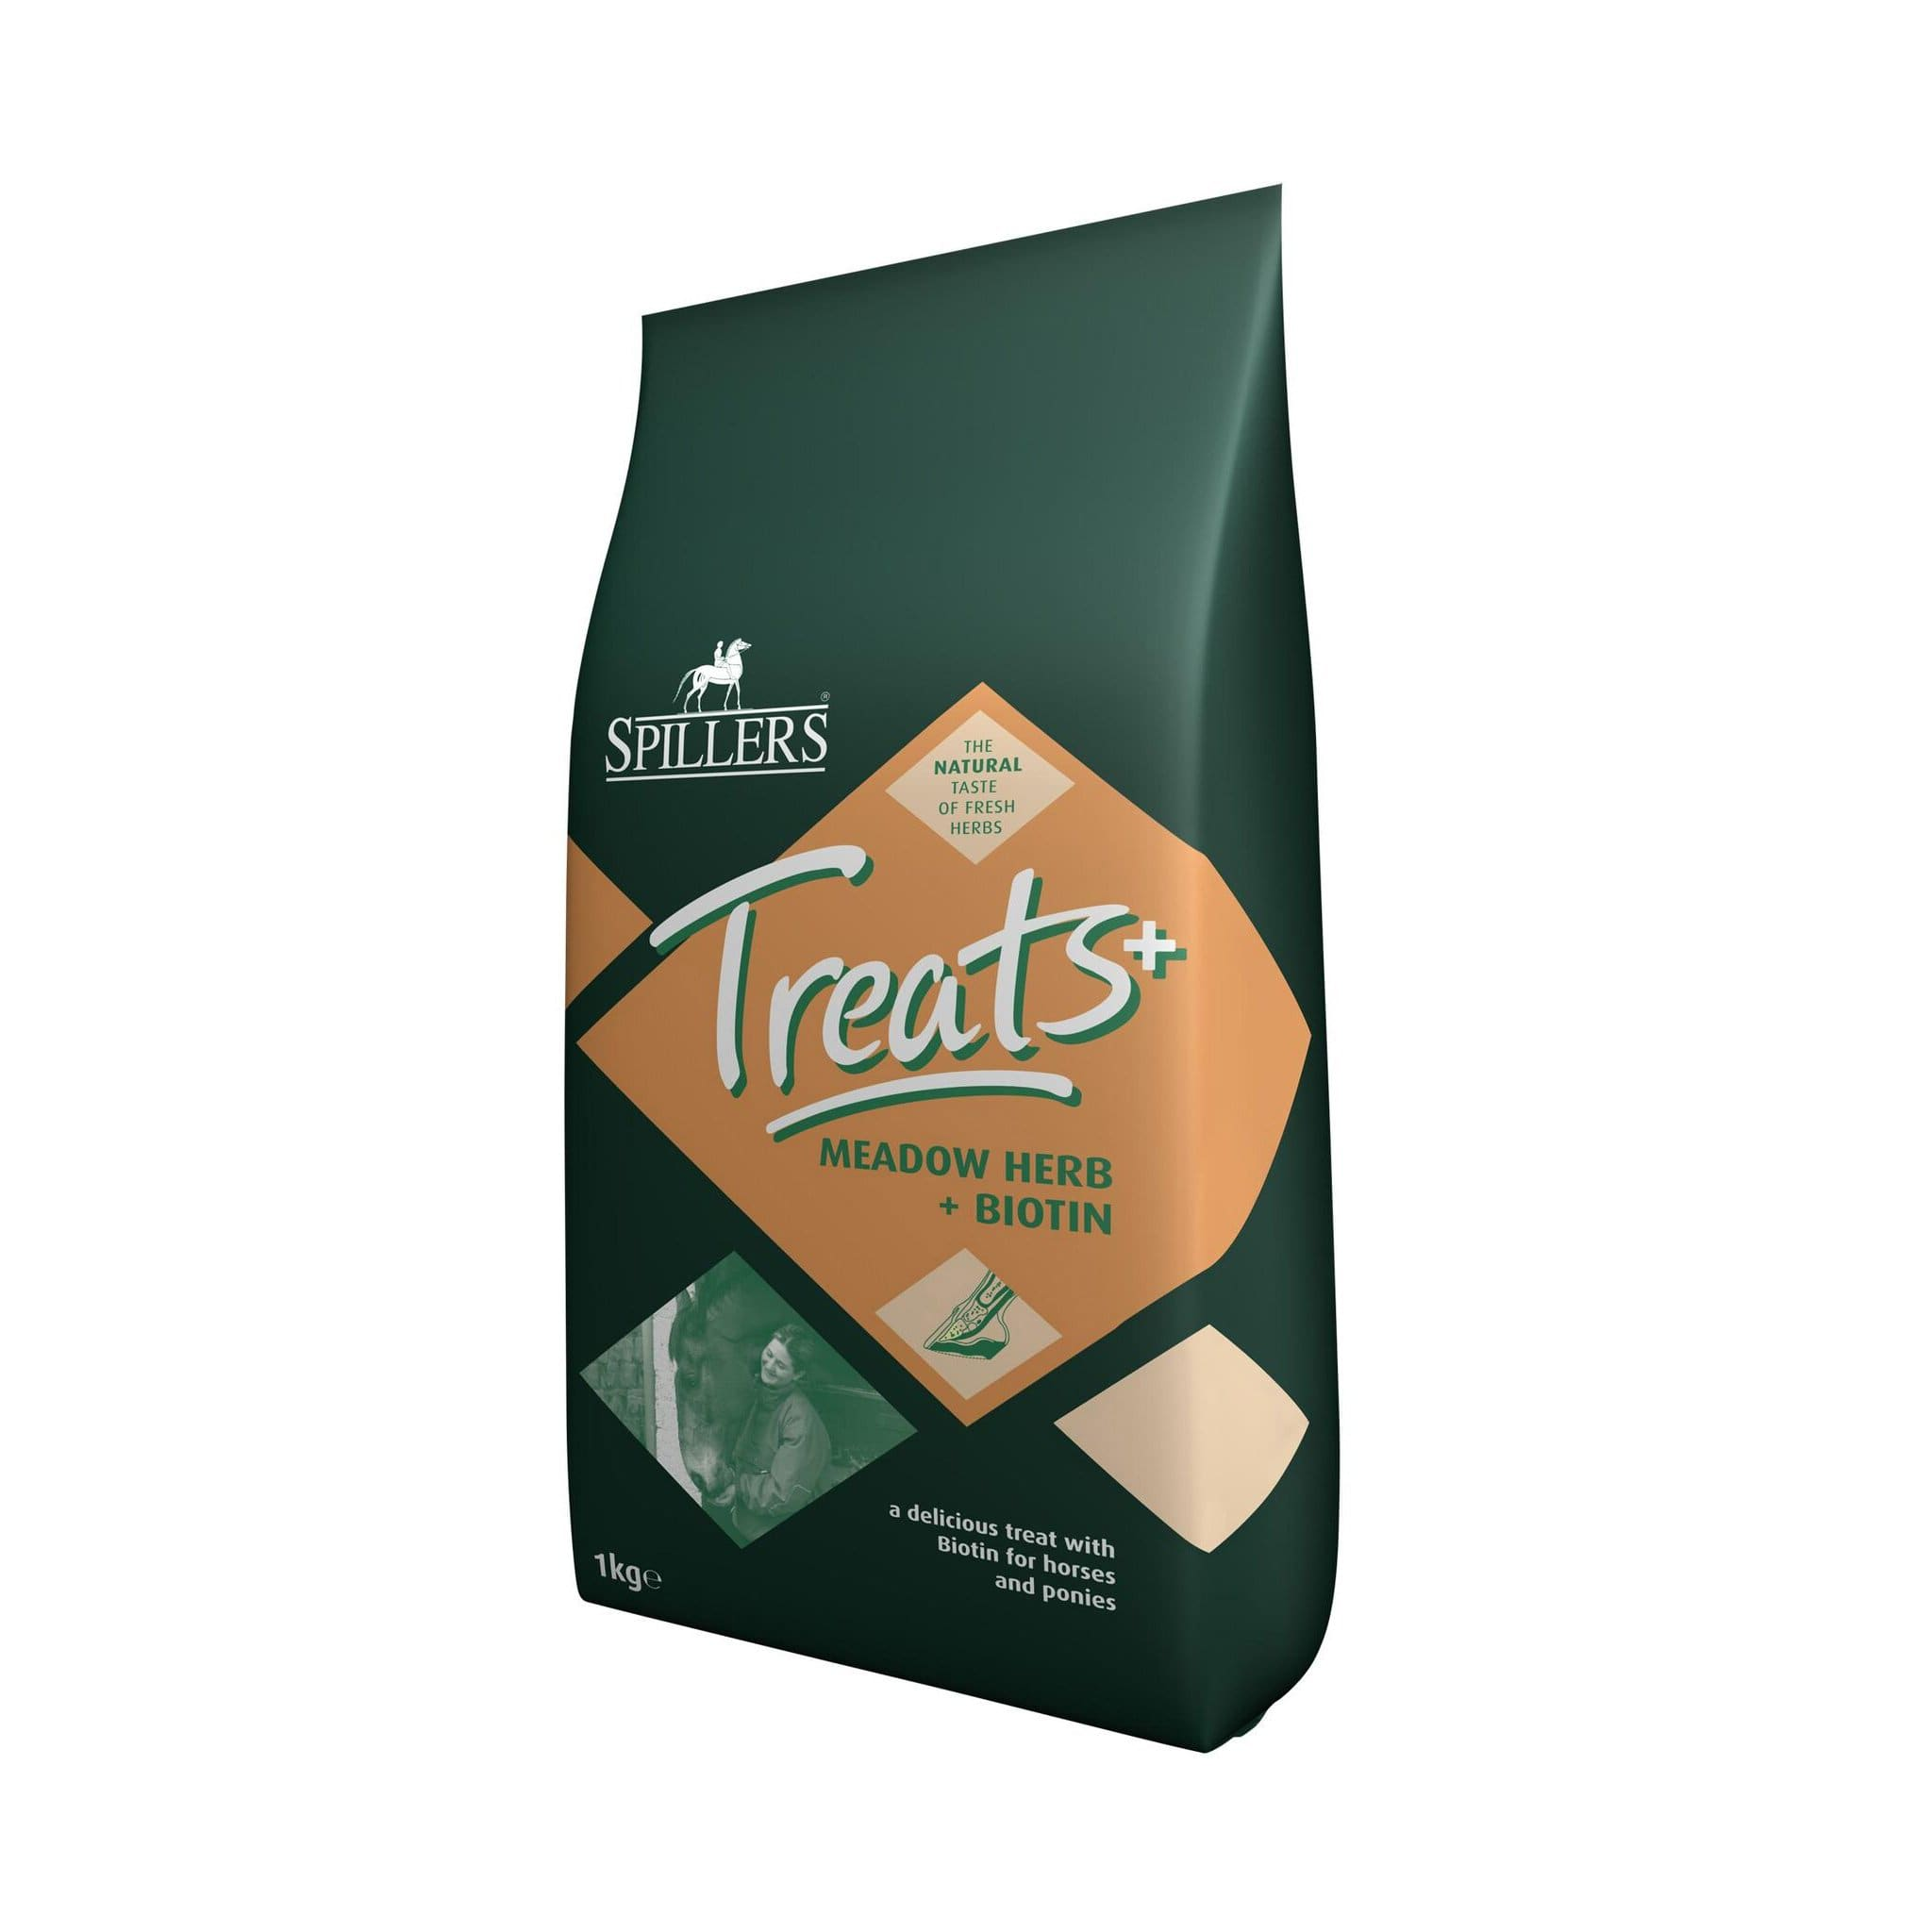 Spillers Meadow Herb Treats + Biotin 1kg